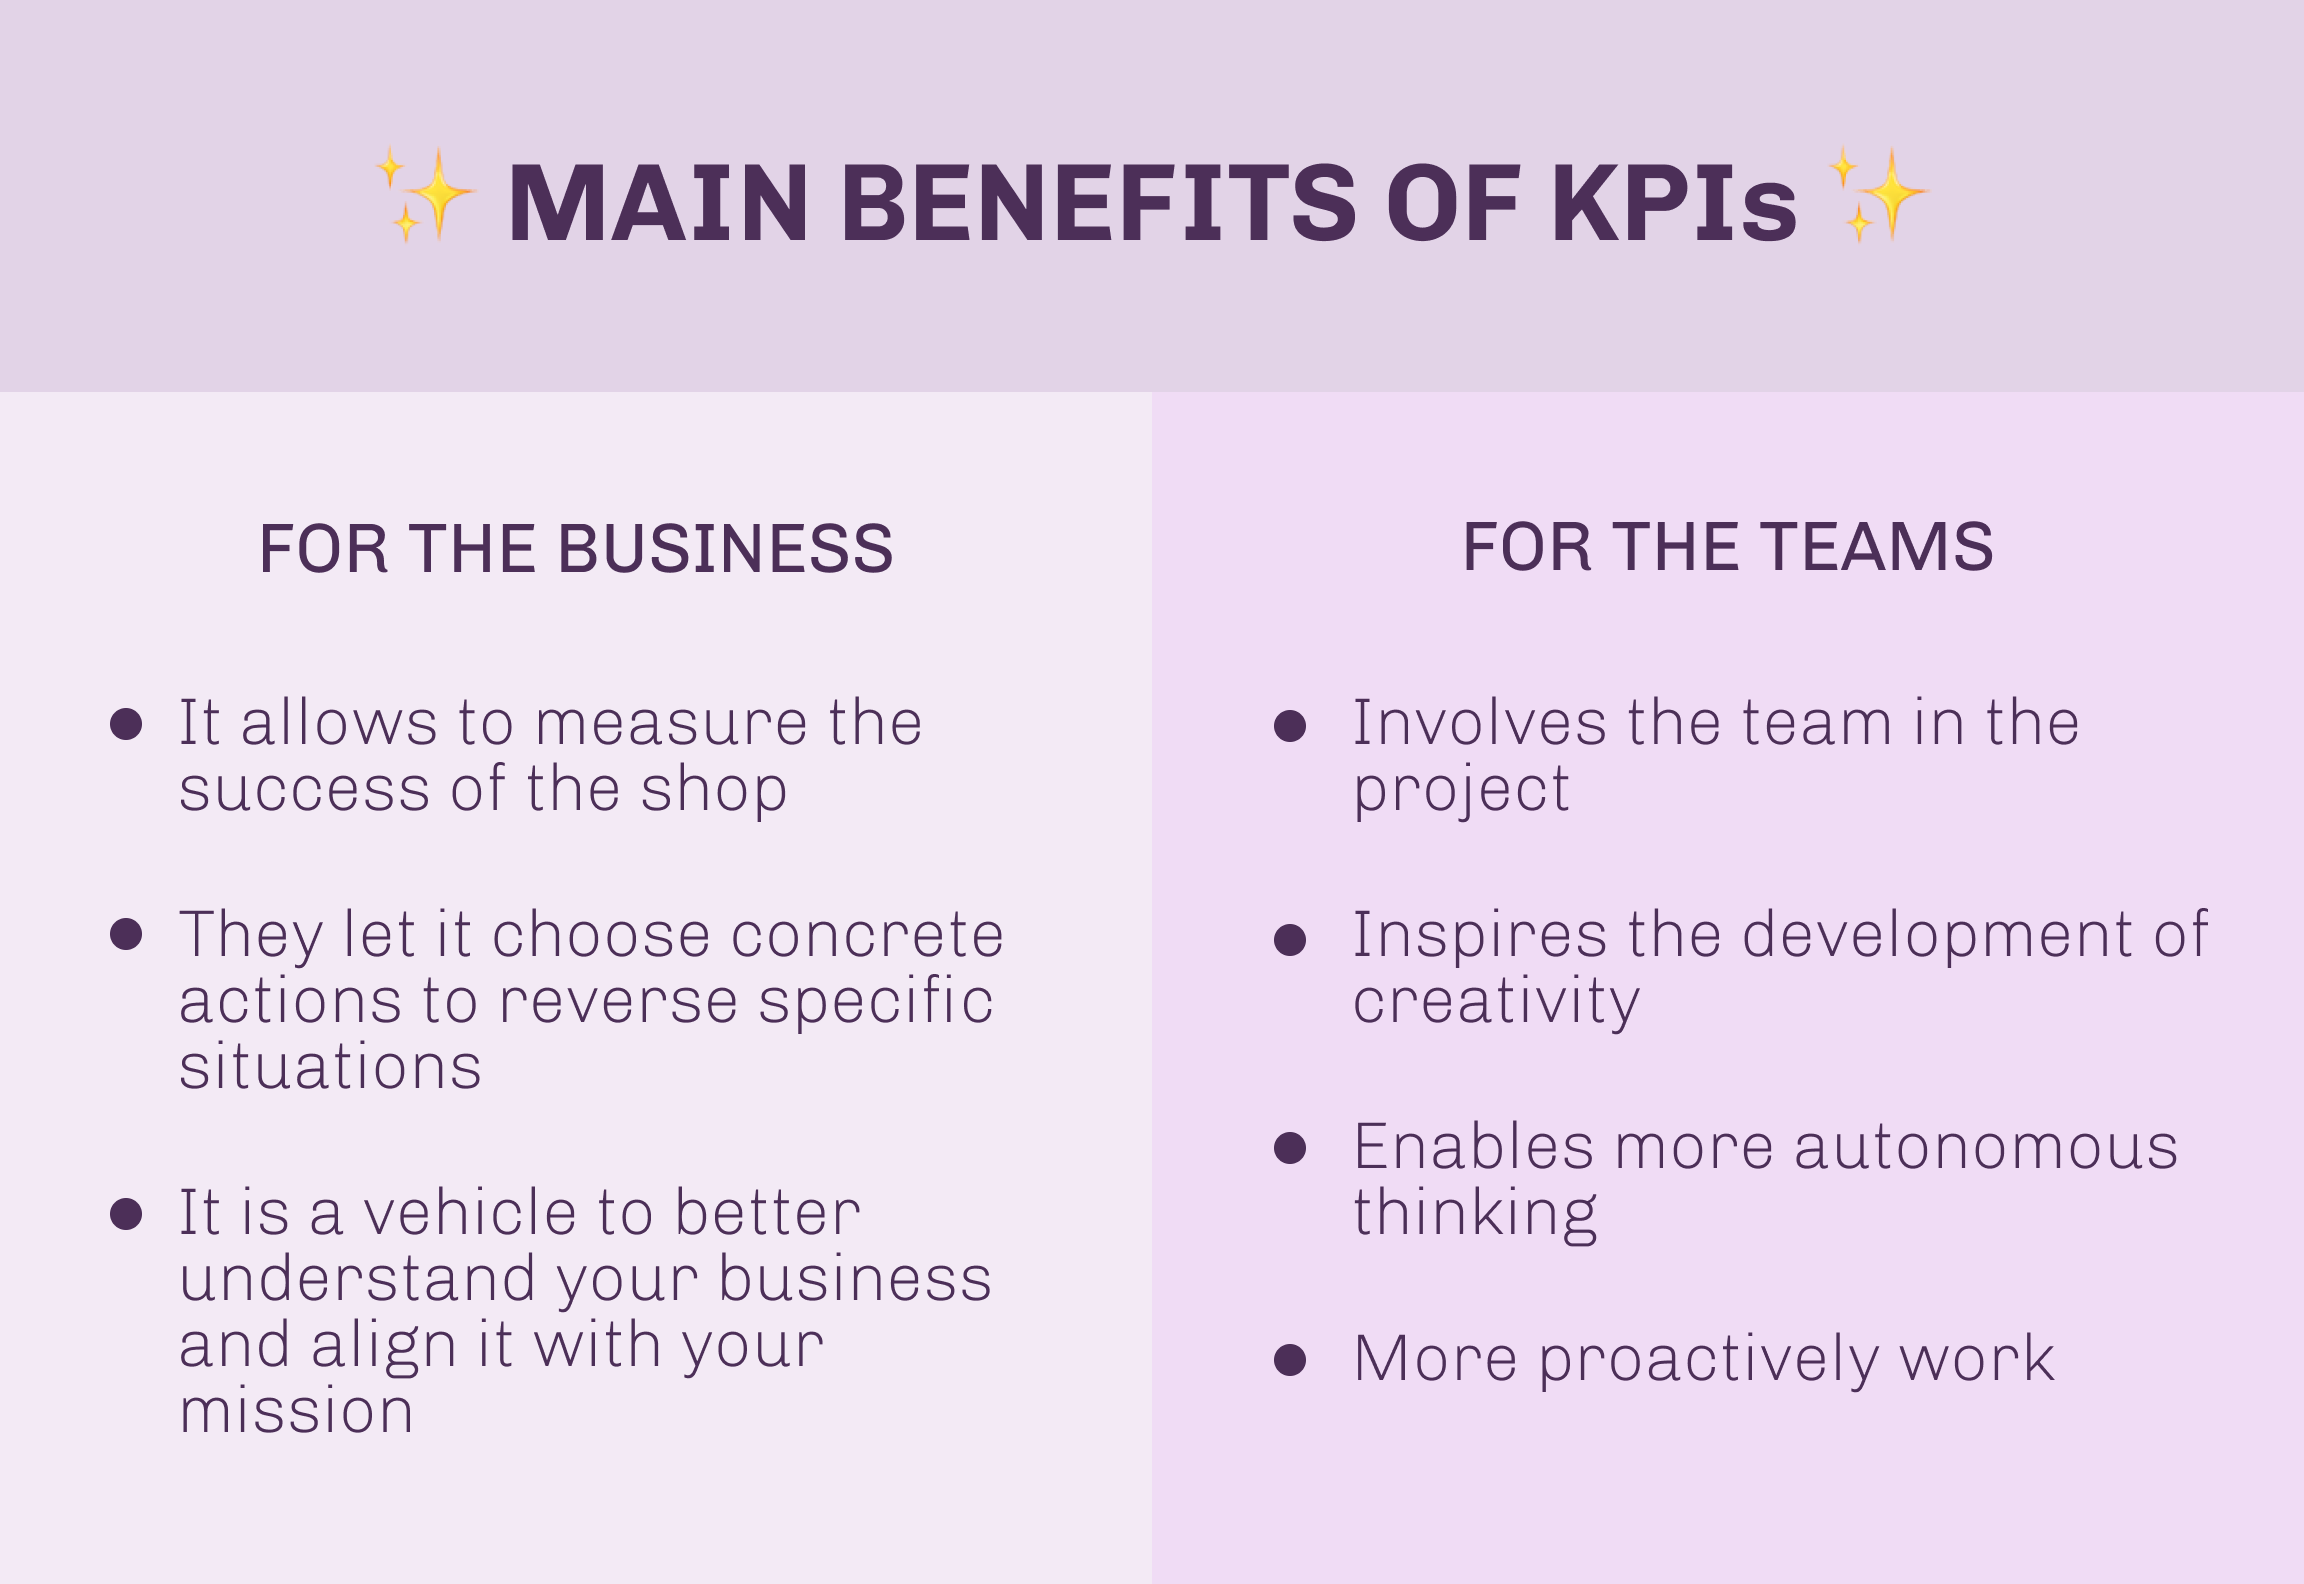 What are the Main Benefits of KPIs